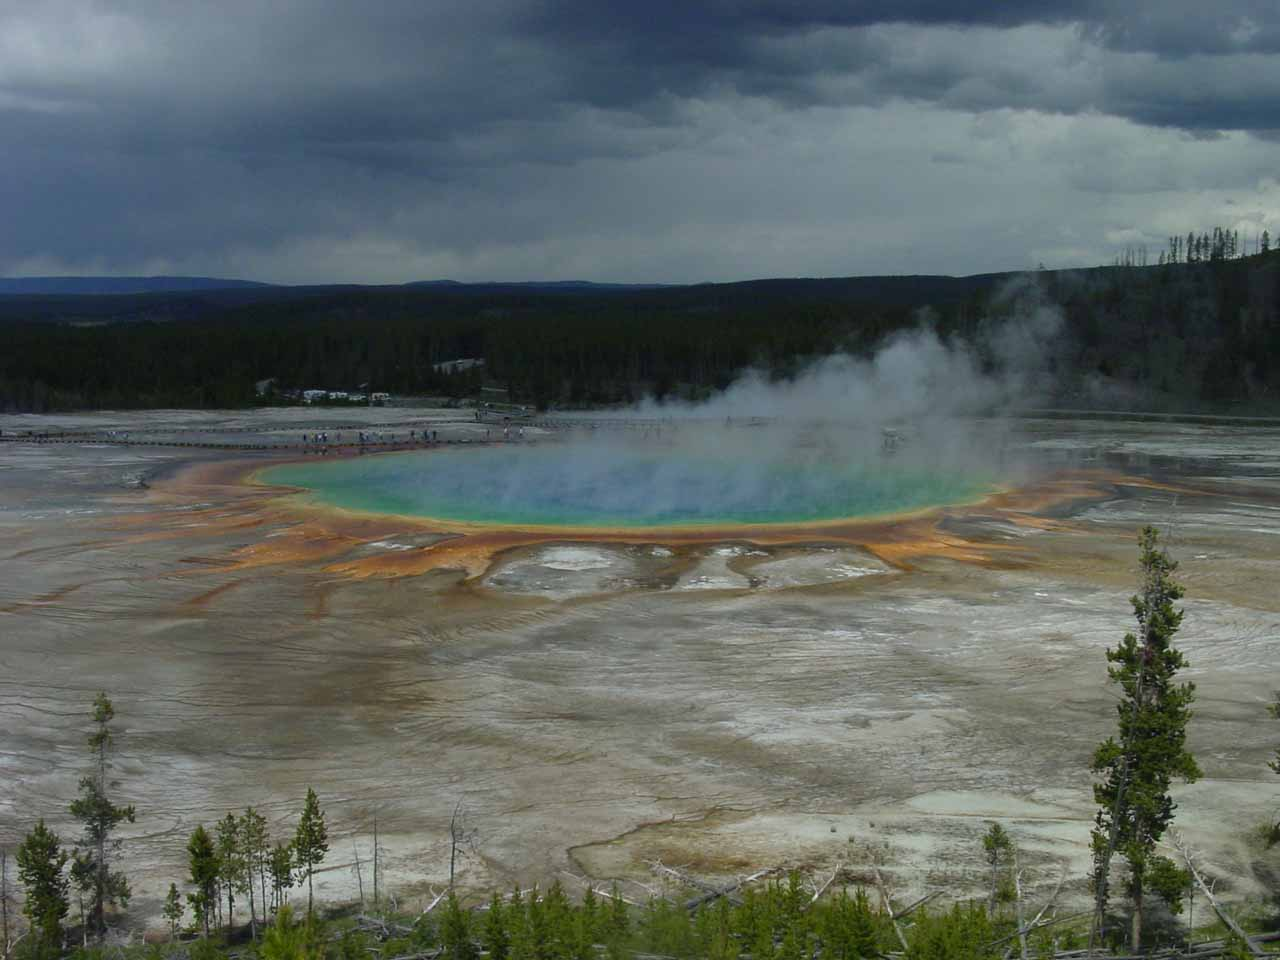 This was as high as we got on the hill and this was our view of the Grand Prismatic Spring